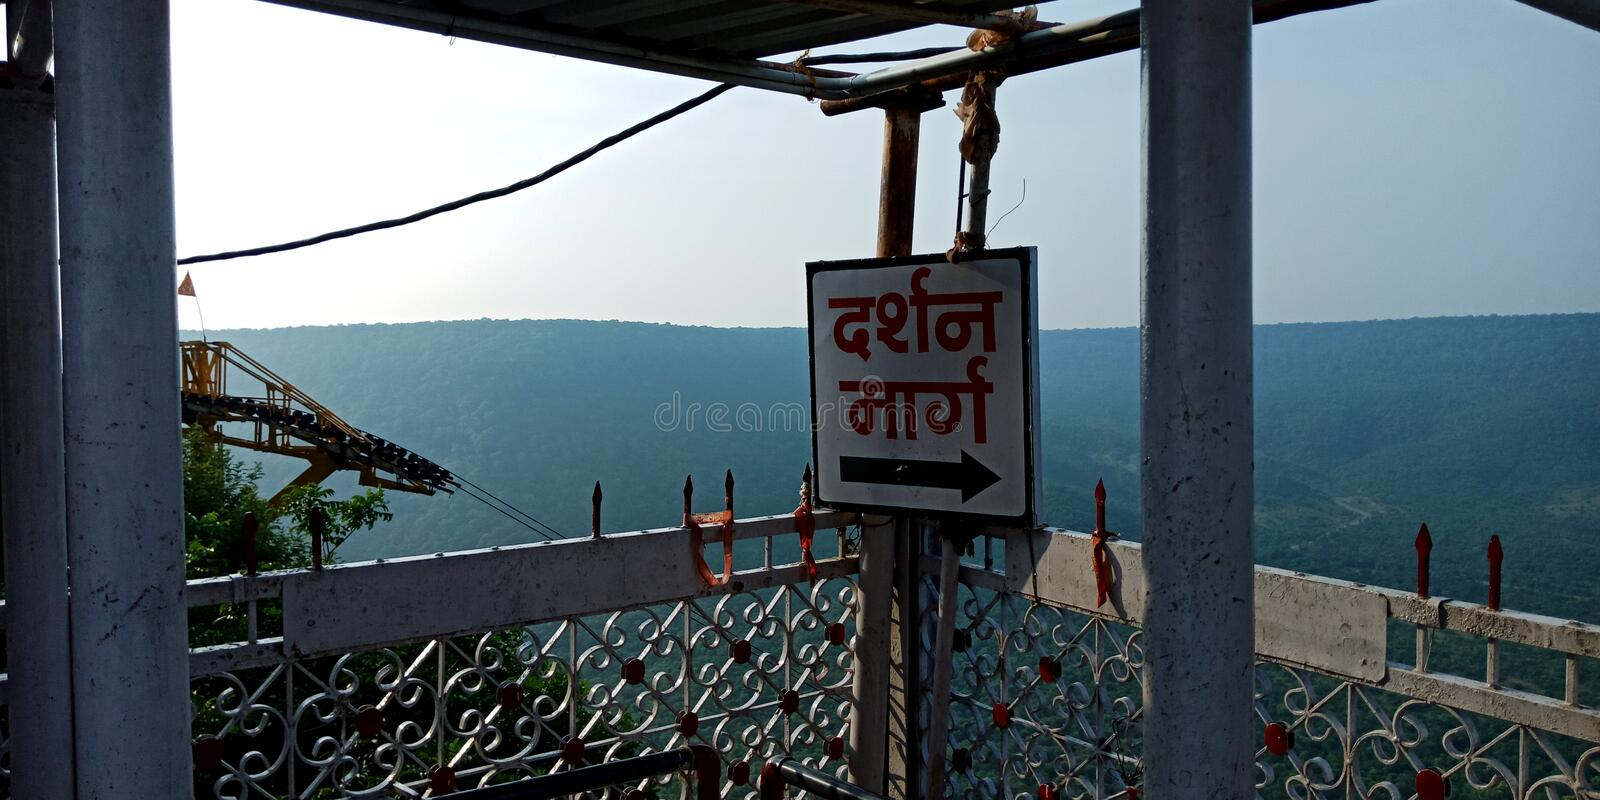 View path board in hindi in indian temple royalty free stock image